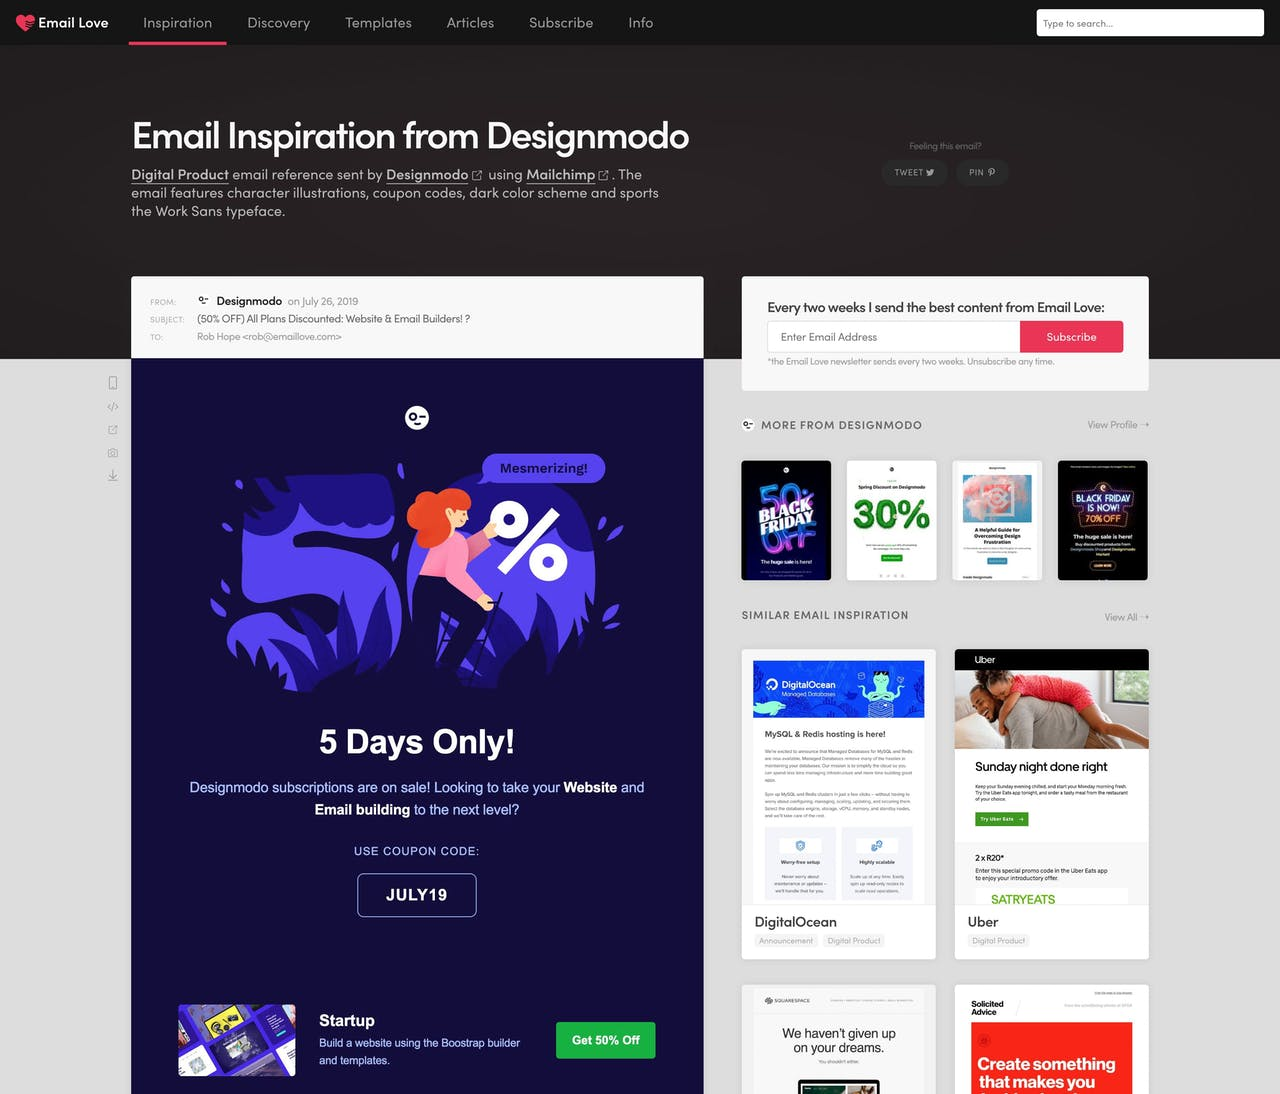 Email Love - email inspiration overview Screenshot